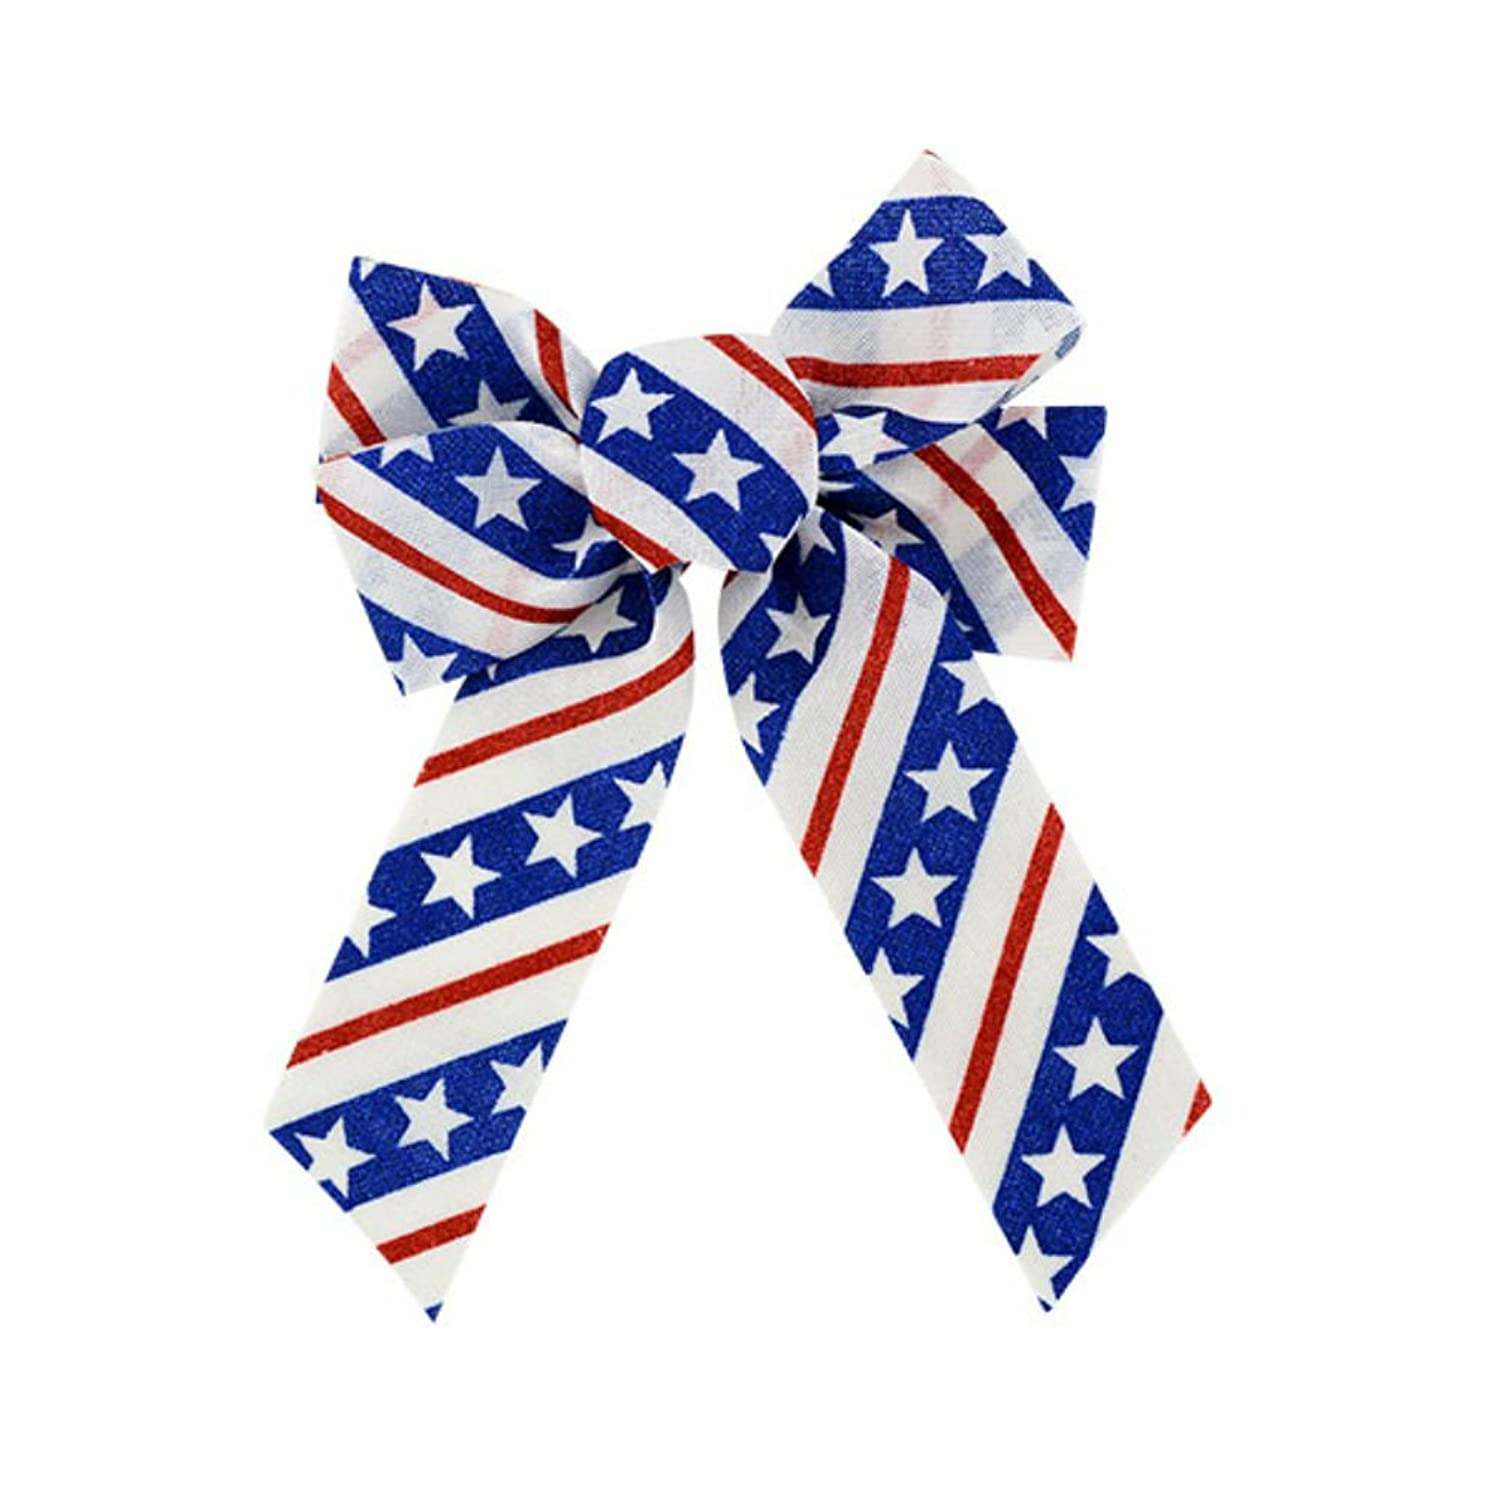 Large Patriotic Burlap Bow with Glitter Designs (White)